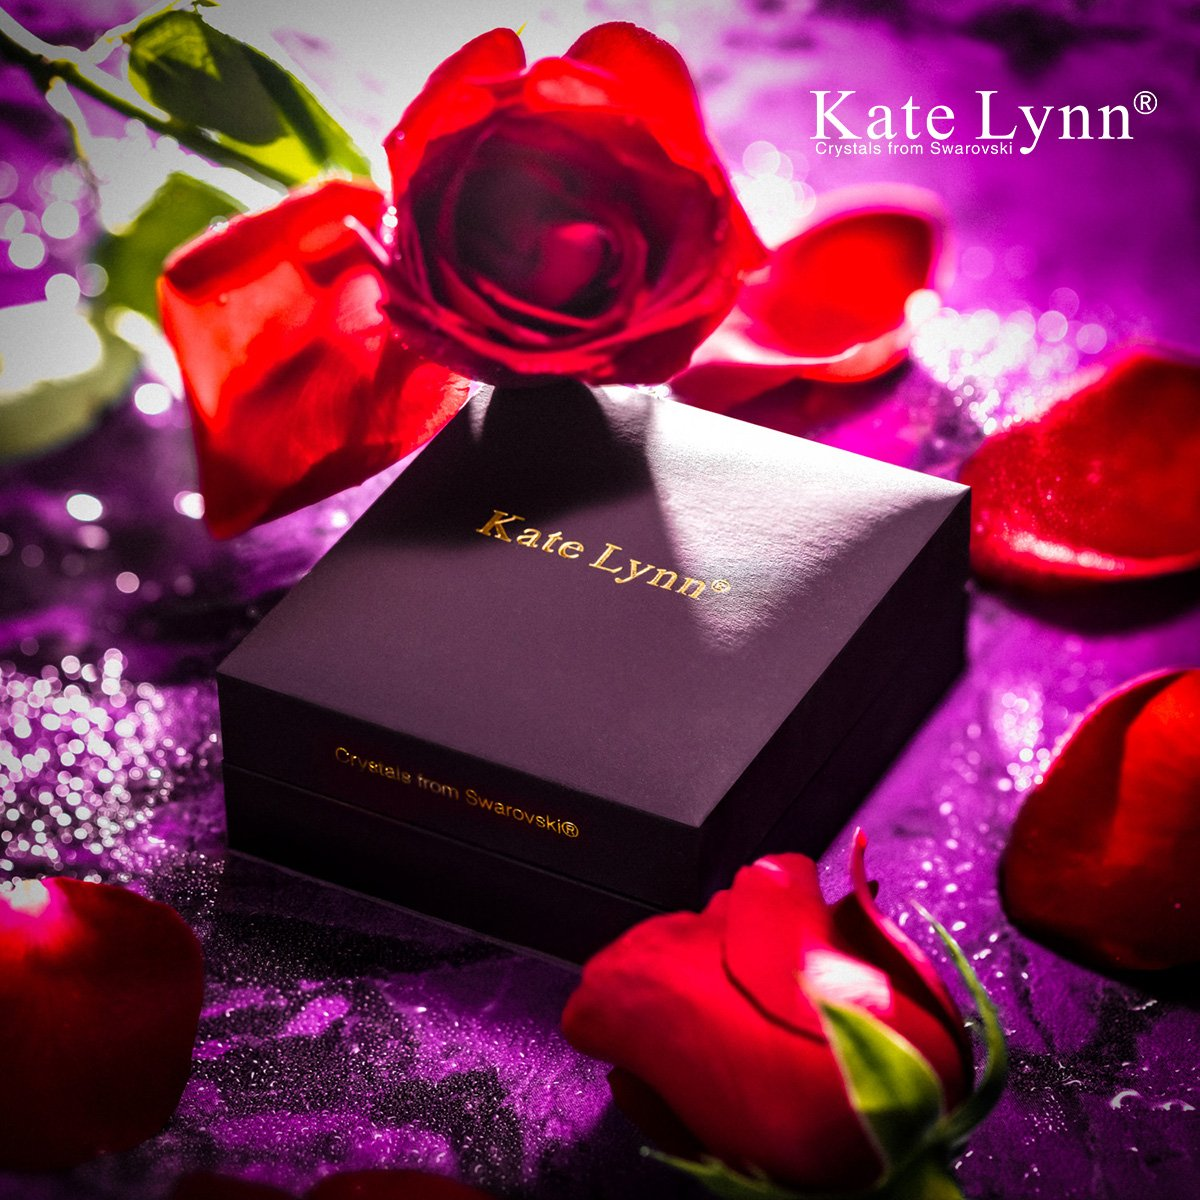 Chain Kate Lynn Bracelets for Women Jewelry Gift Womans ❤️Gifts for Her❤️ Made with Swarovski Crystals Bangle Bracelets with Gift Box Pendant Soft Cloth